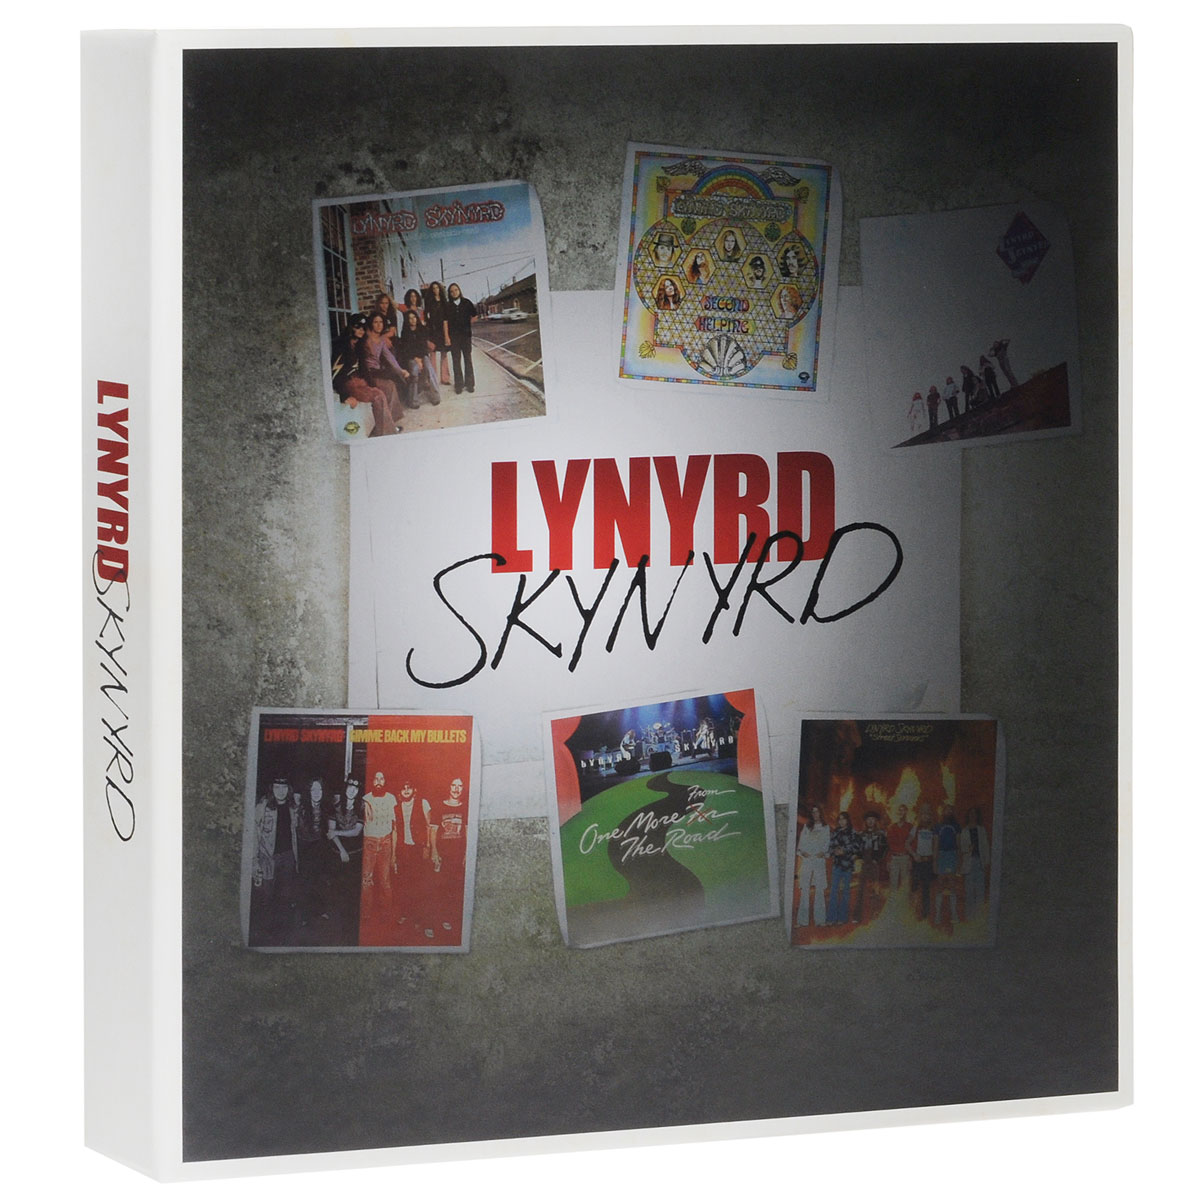 Lynyrd Skynyrd Lynyrd Skynyrd (7 LP) sweet sweet the rainbow sweet live in the uk new vinyl edition 2 lp